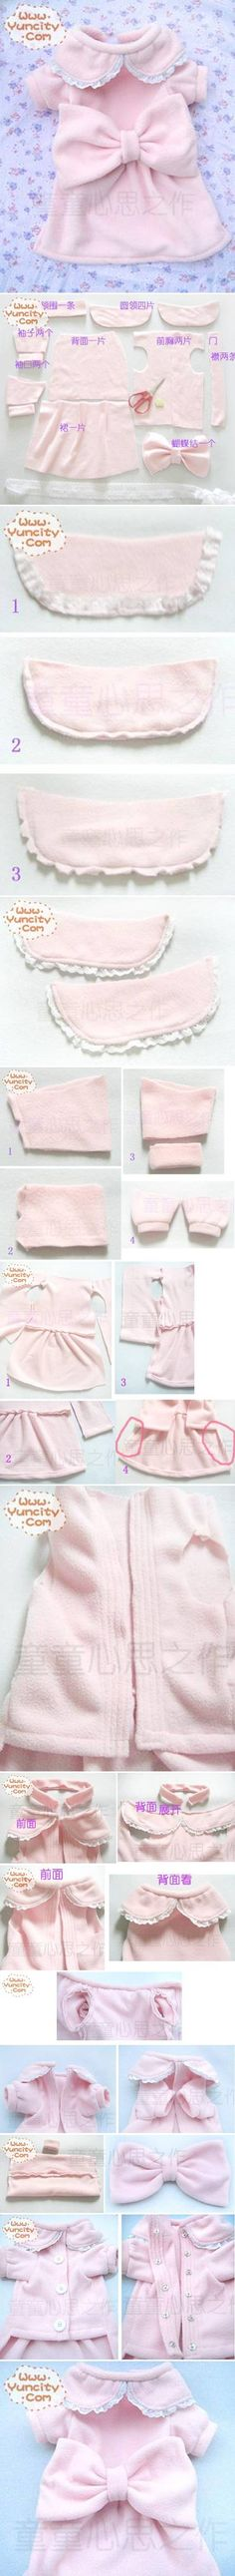 DIY Cute Dog Dress DIY Projects | UsefulDIY.com Follow Us on Facebook ==> www.facebook.com/...